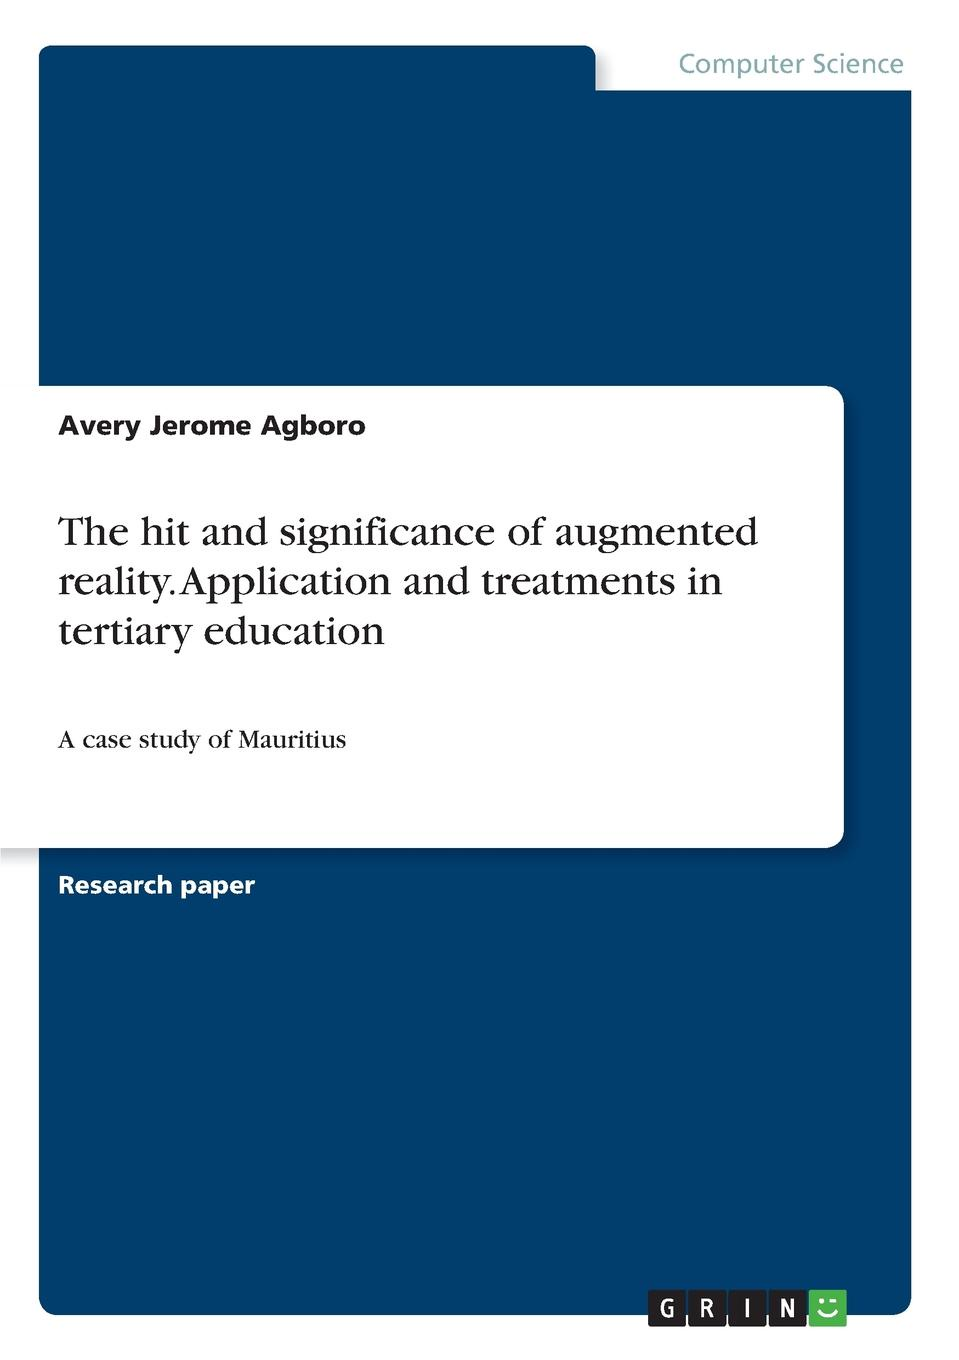 Avery Jerome Agboro The hit and significance of augmented reality. Application and treatments in tertiary education computer vision and augmented reality